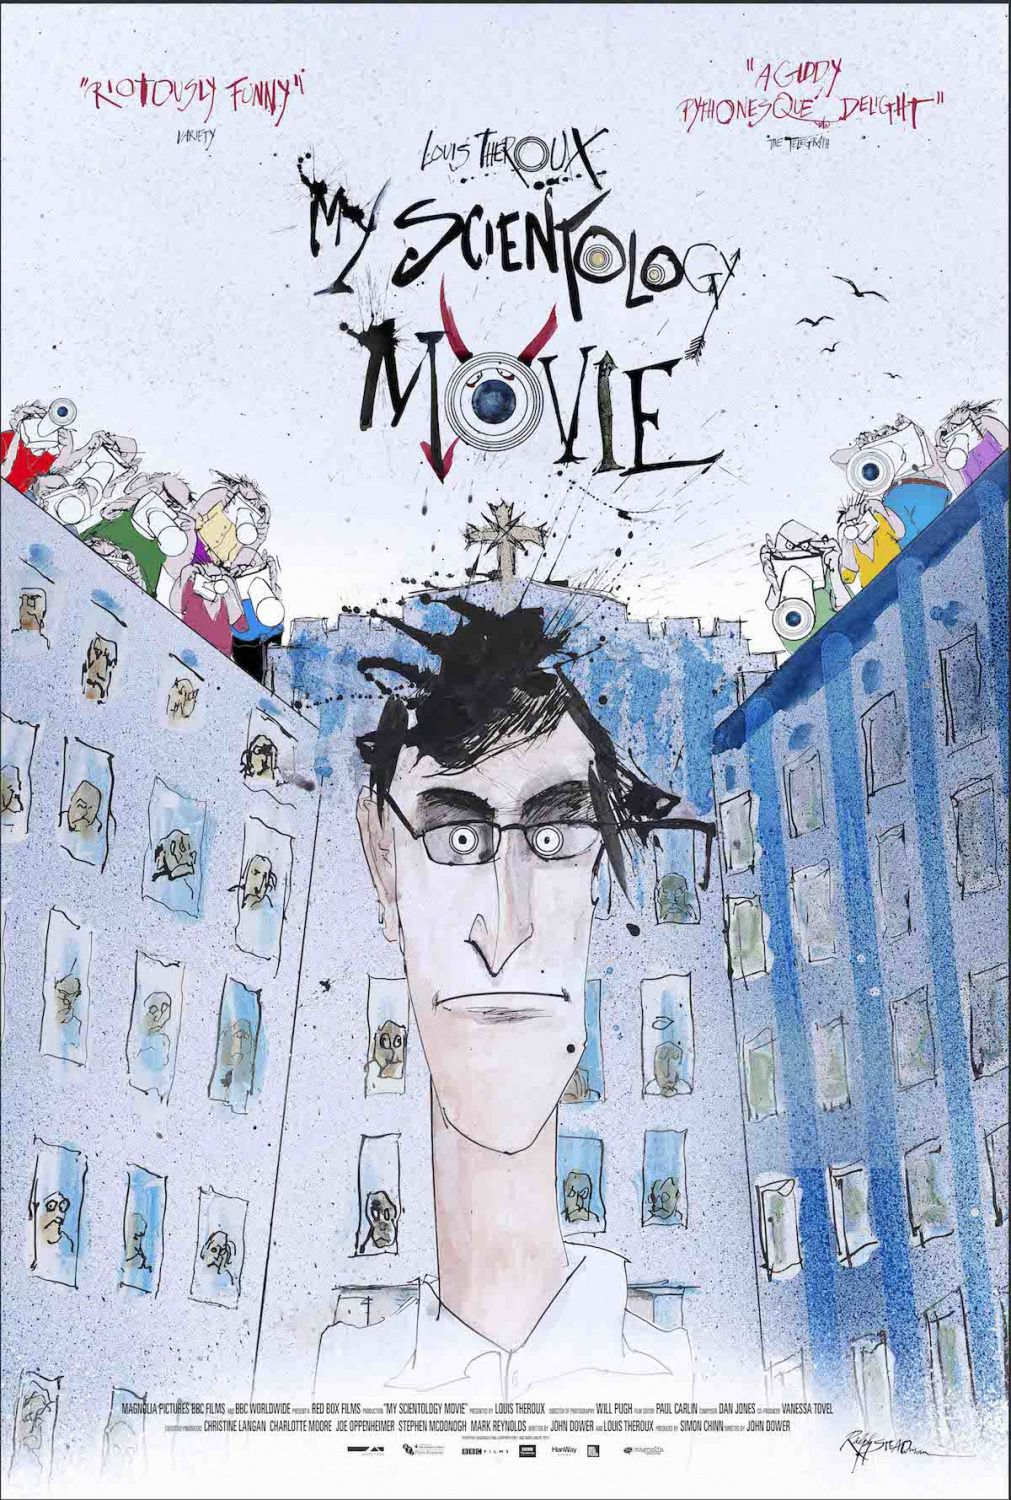 My Scientology Movie - by John Dower - Louis Theroux, Tom De Vocht, Marty Rathbun, Jefferson Hawkins - film poster